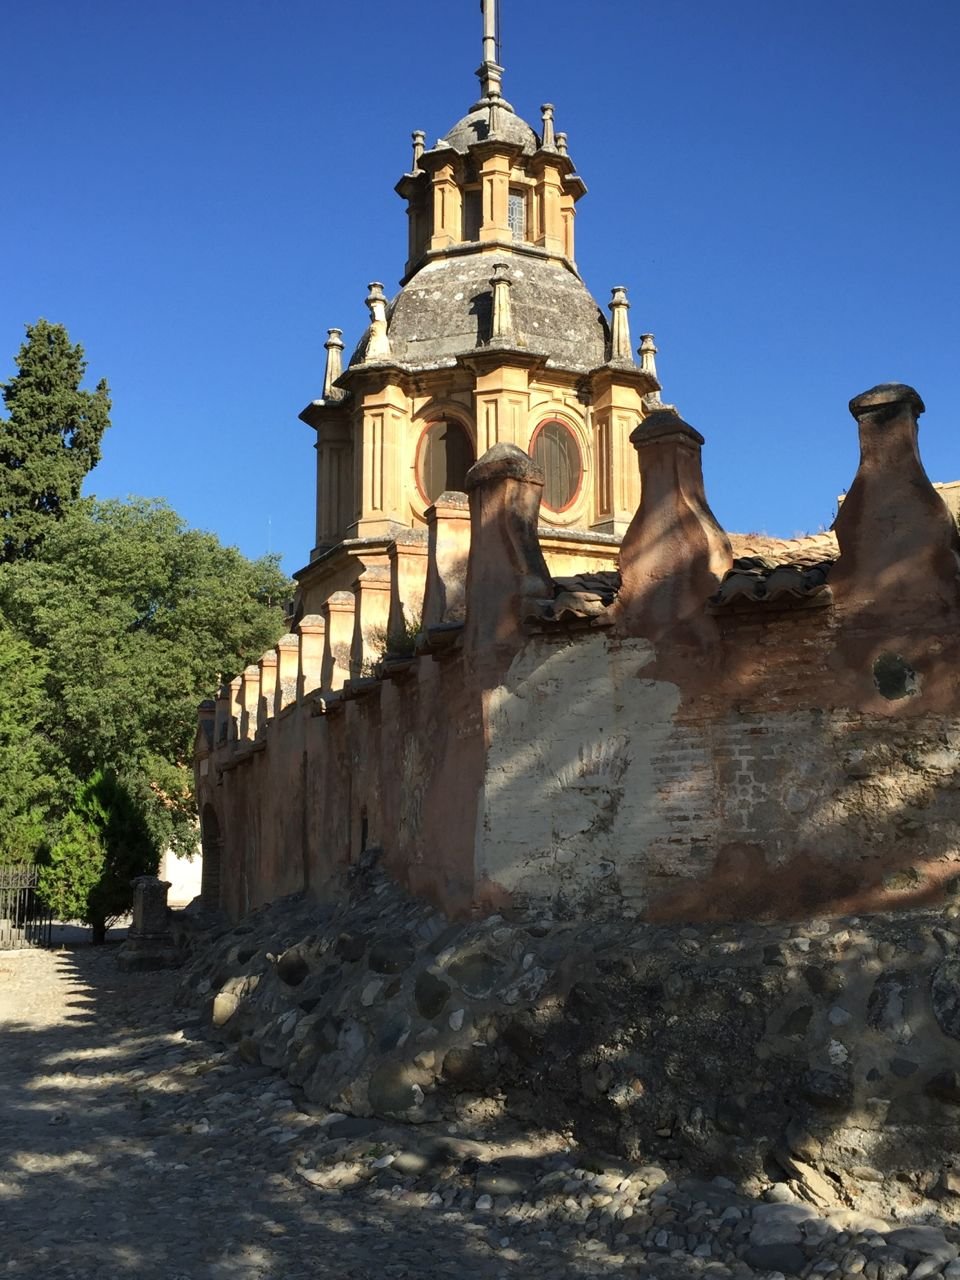 The Sacromonte Abbey in the hills above Granada.